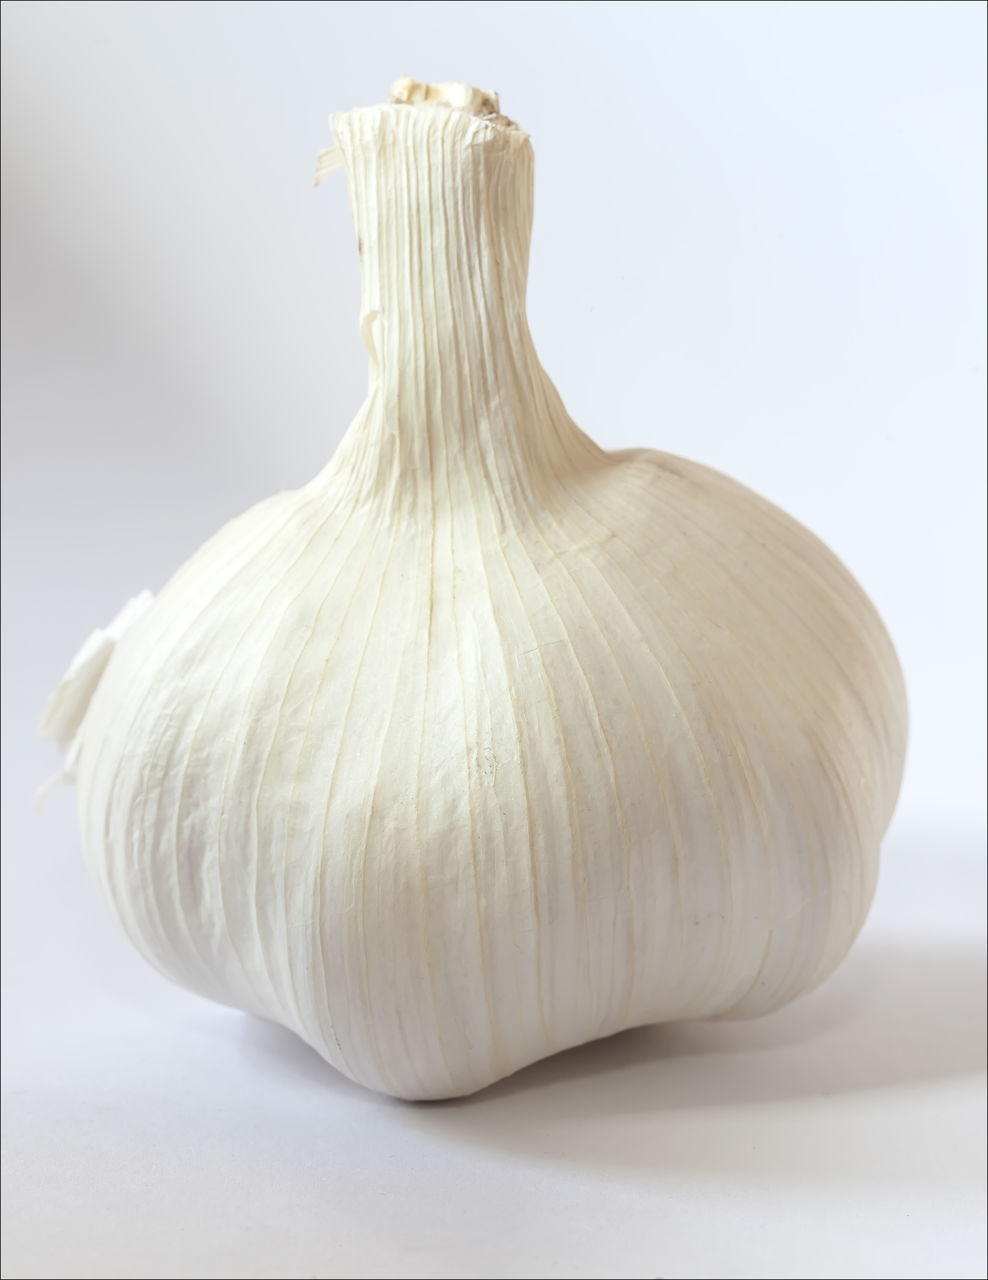 garlic, garlic bulb, food and drink, studio shot, food, close-up, no people, healthy eating, freshness, vegetable, white background, indoors, day